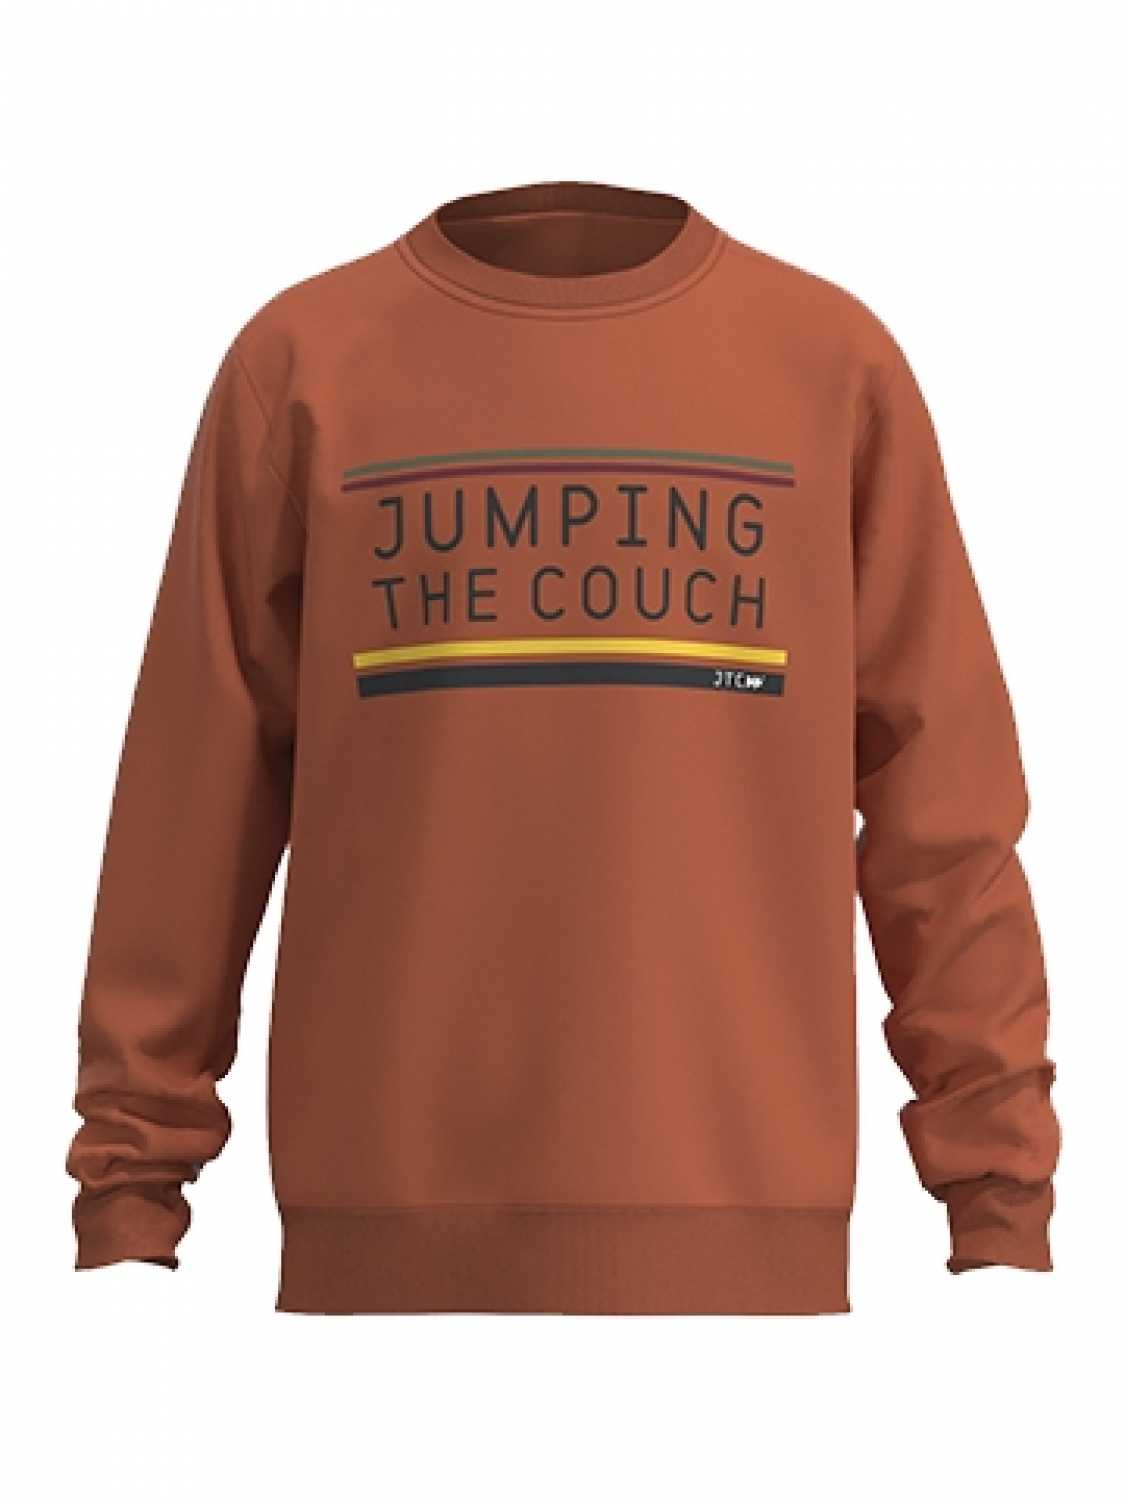 Jumping the Couch Sweater